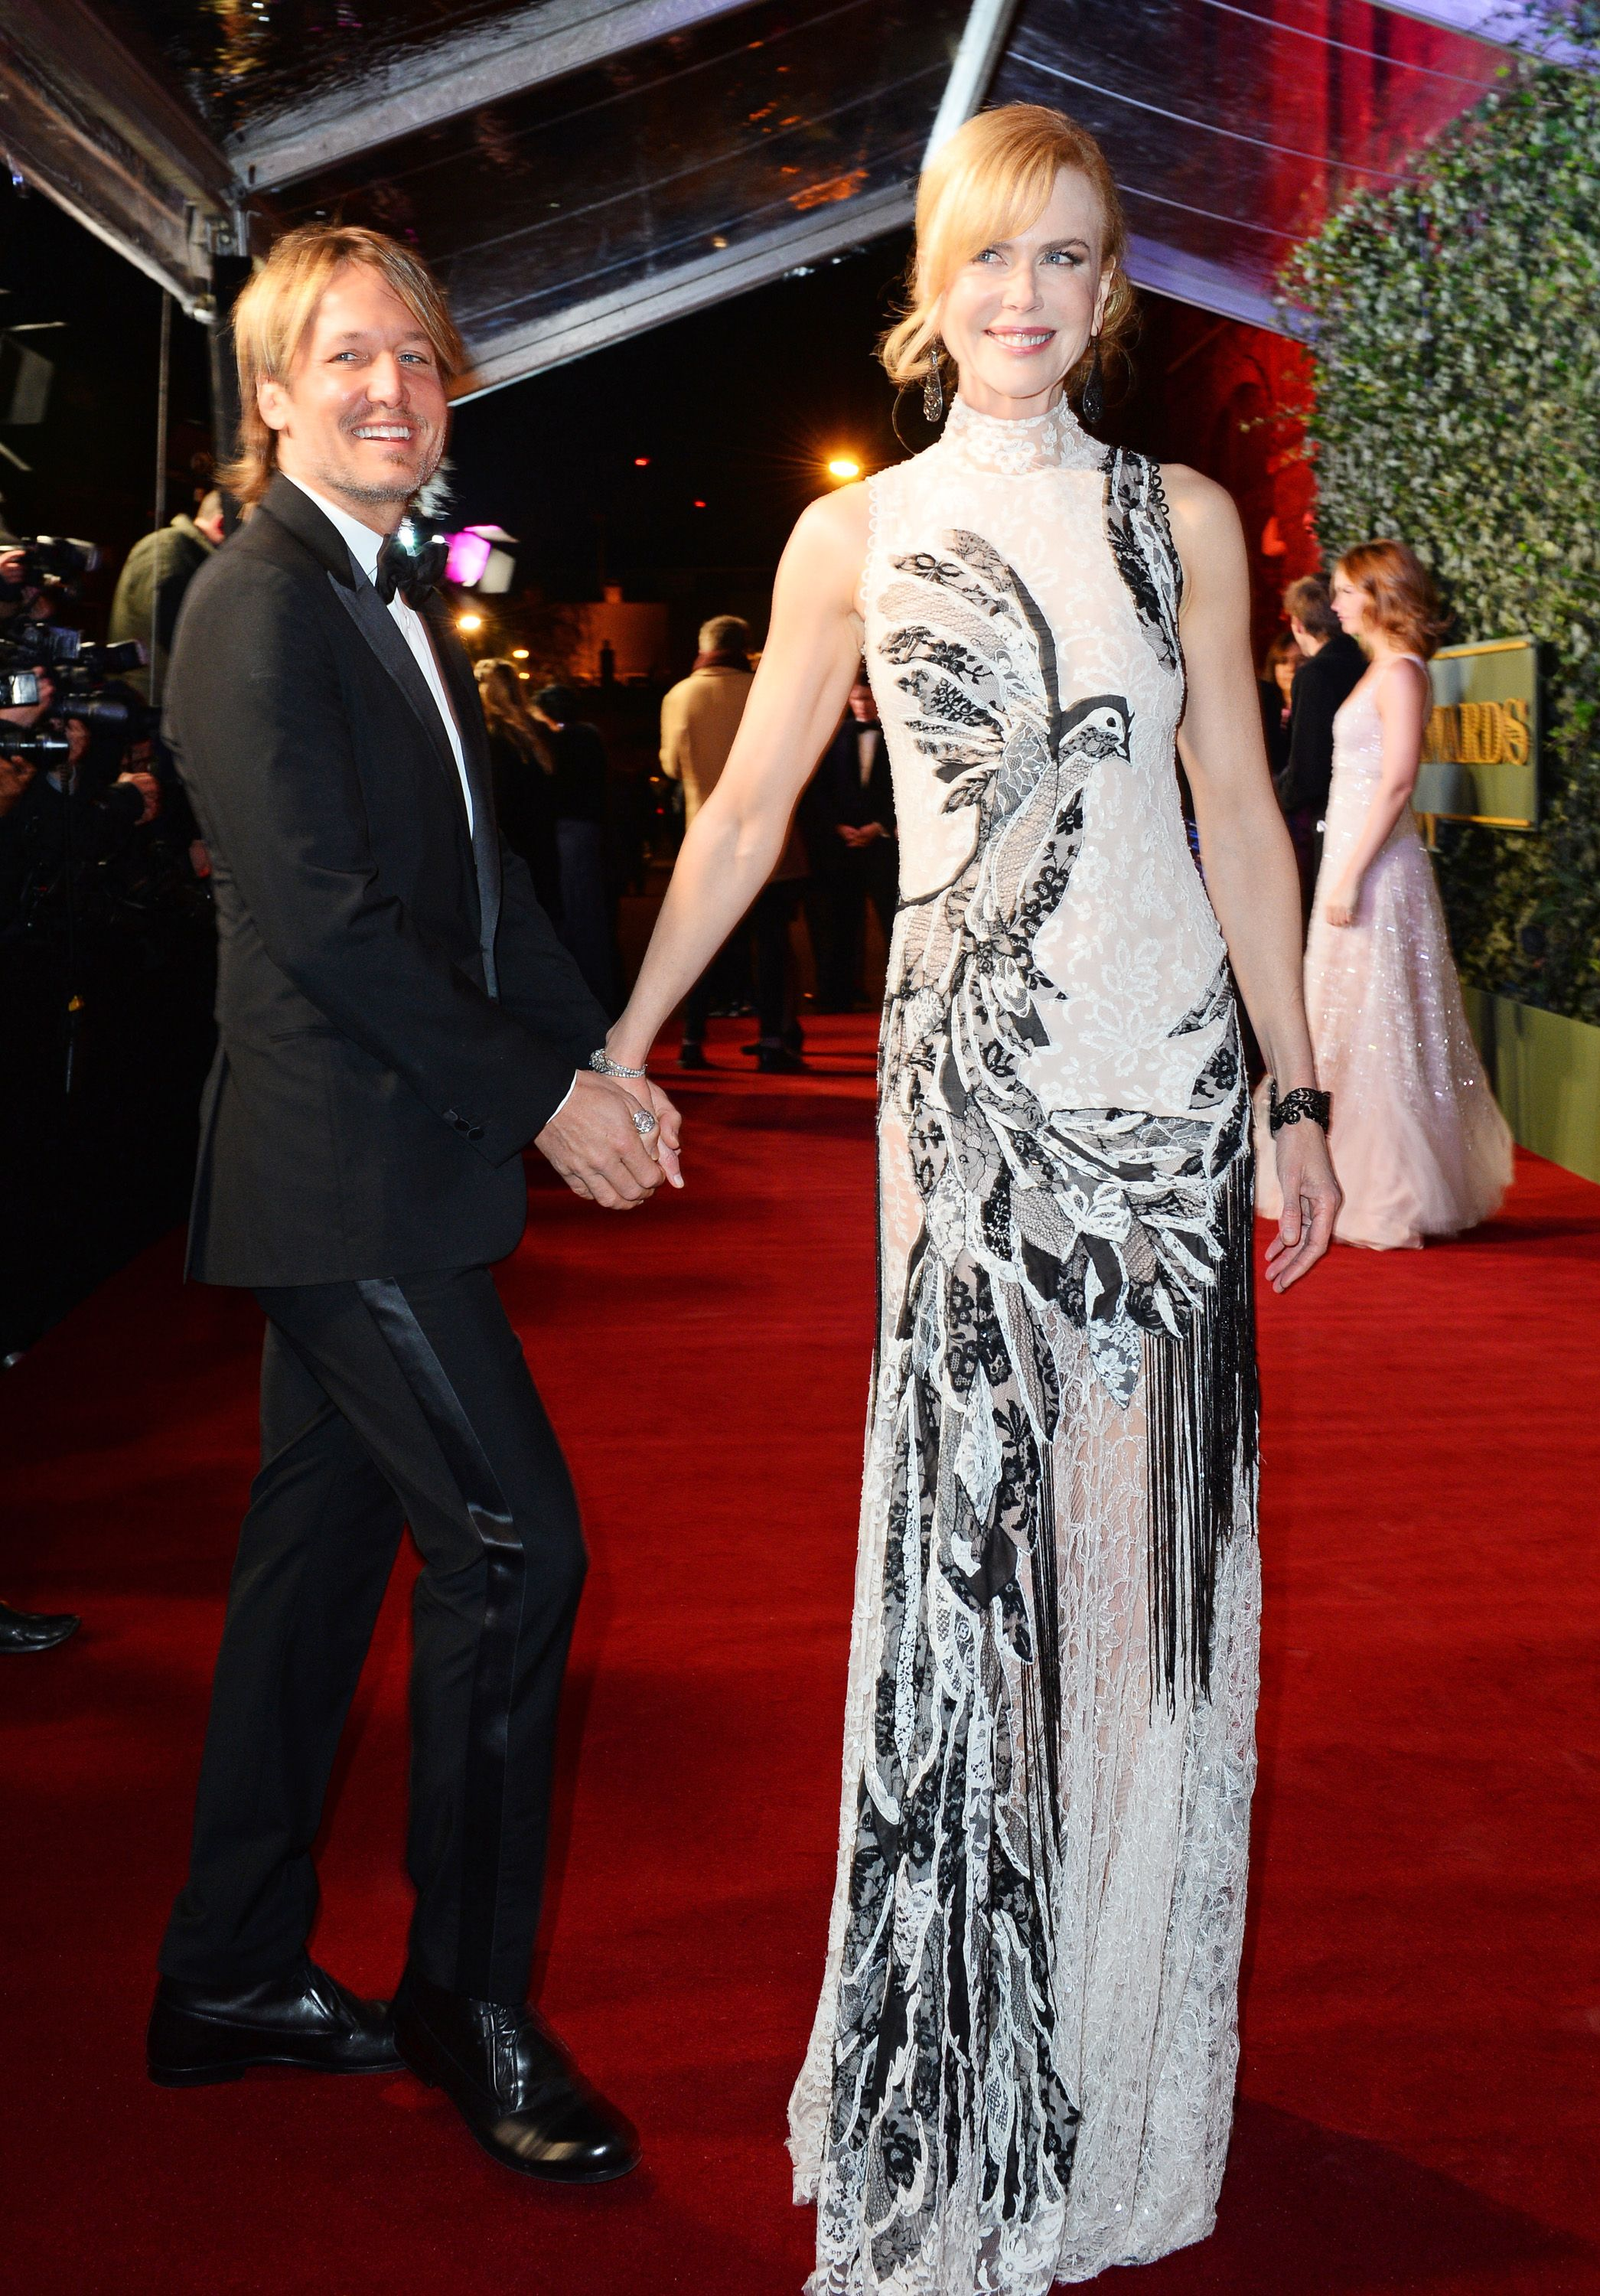 20 Celebrity Couples With A Major Height Difference You Never Noticed Nicole Kidman Nicole Kidman Keith Urban Nicole Kidman Height